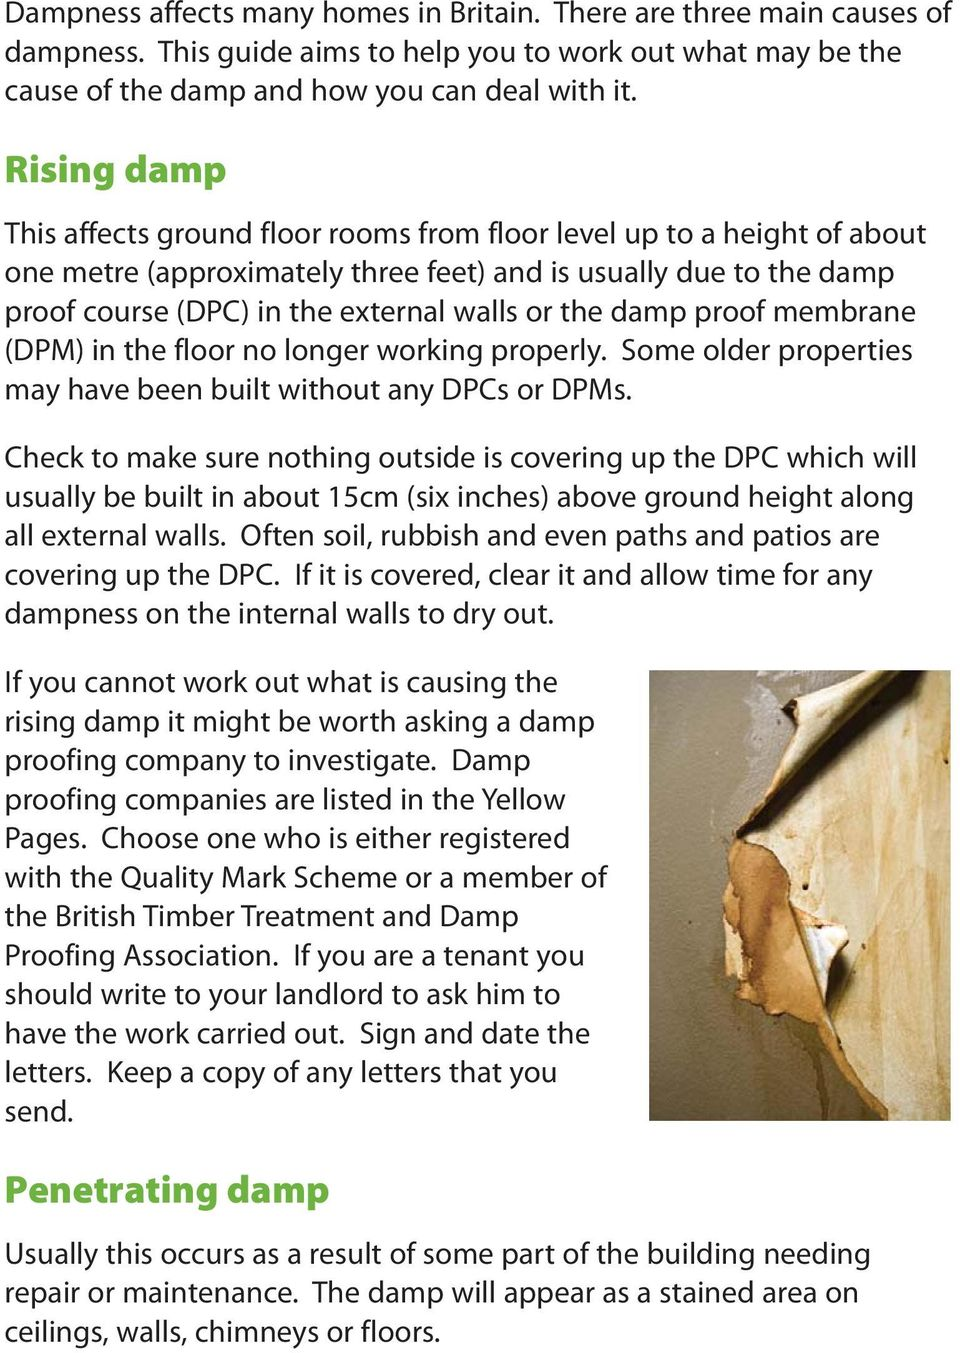 the damp proof membrane (DPM) in the floor no longer working properly. Some older properties may have been built without any DPCs or DPMs.